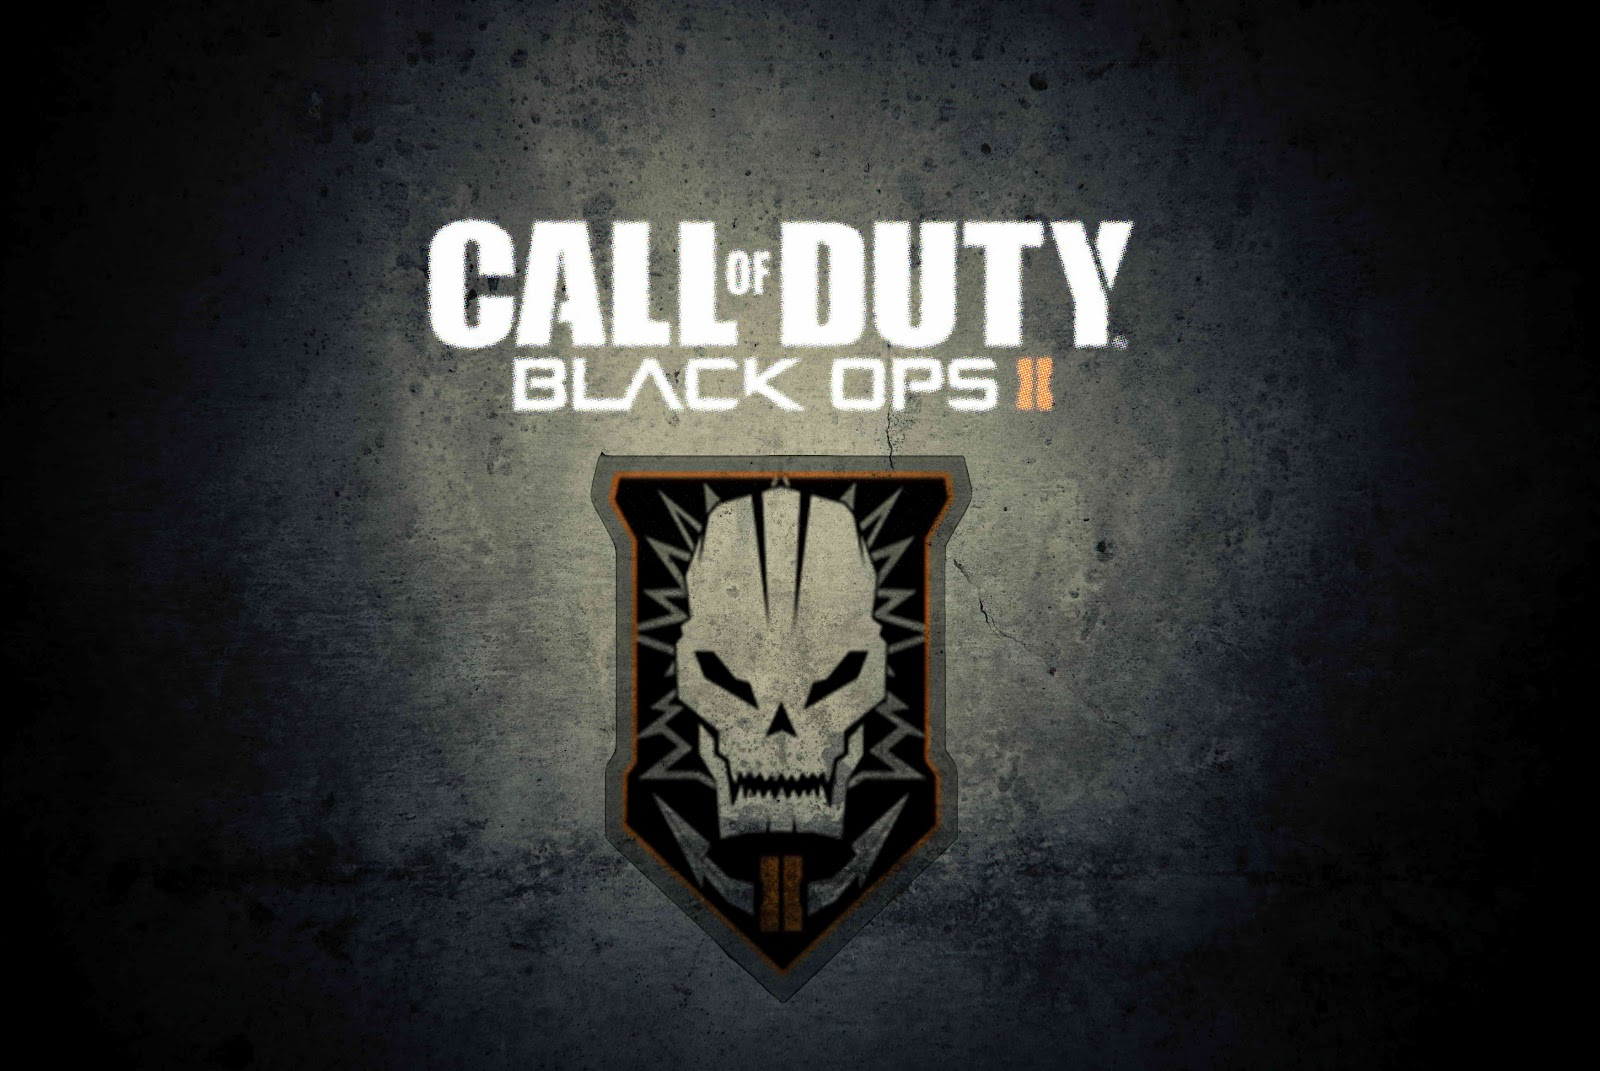 HD WALLPAPERS Call of Duty Black ops 2 HD Wallpapers 1600x1071